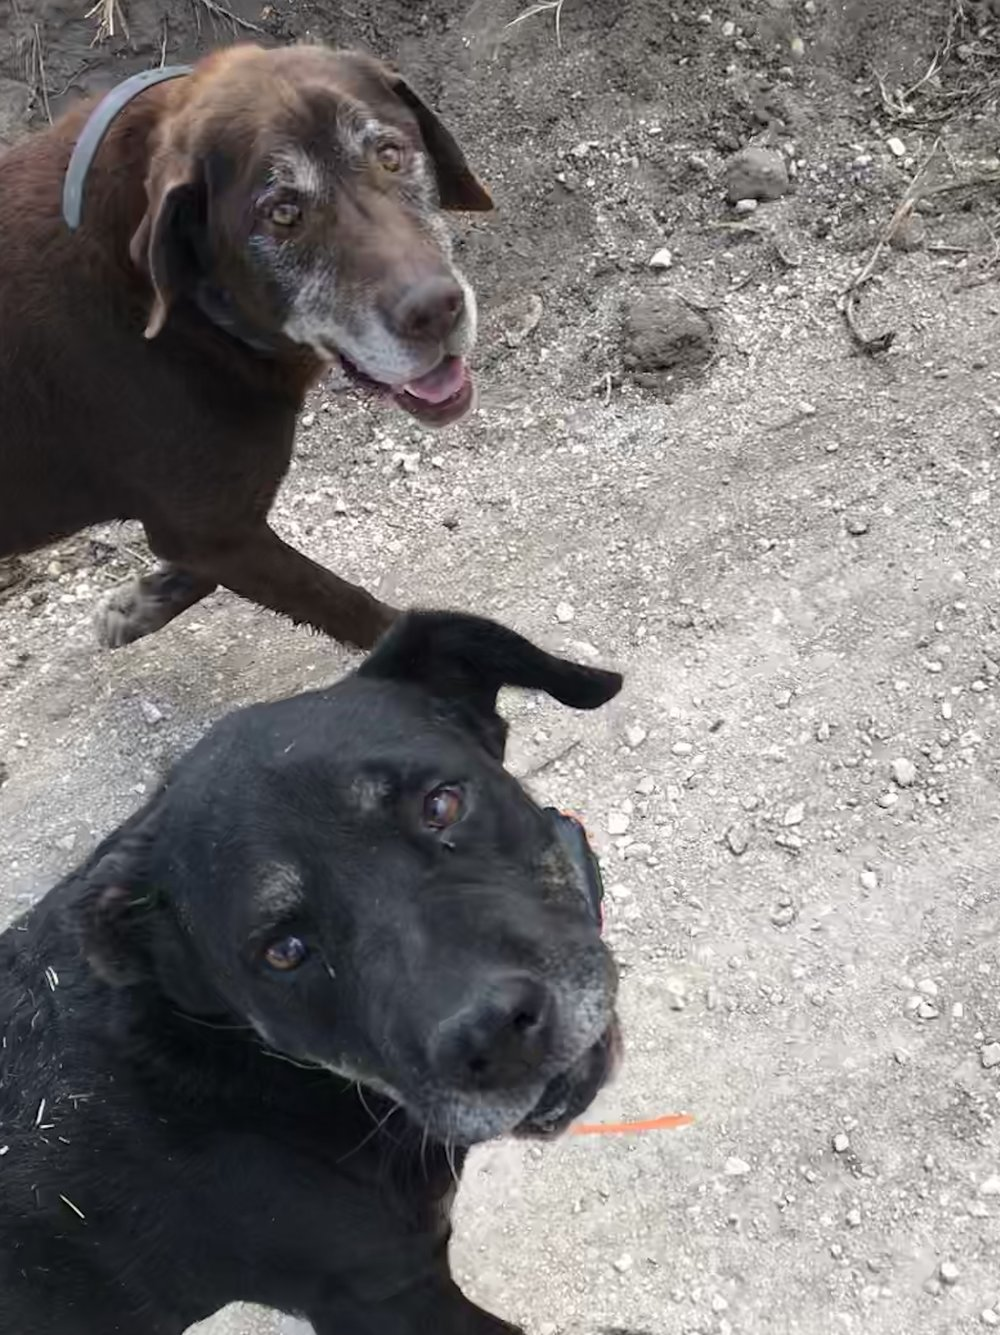 Our Resident Happy Tails - We hope to provide a safe and happy leeway station for senior dogs until a foster home is found in which they can live out their final days in peace.